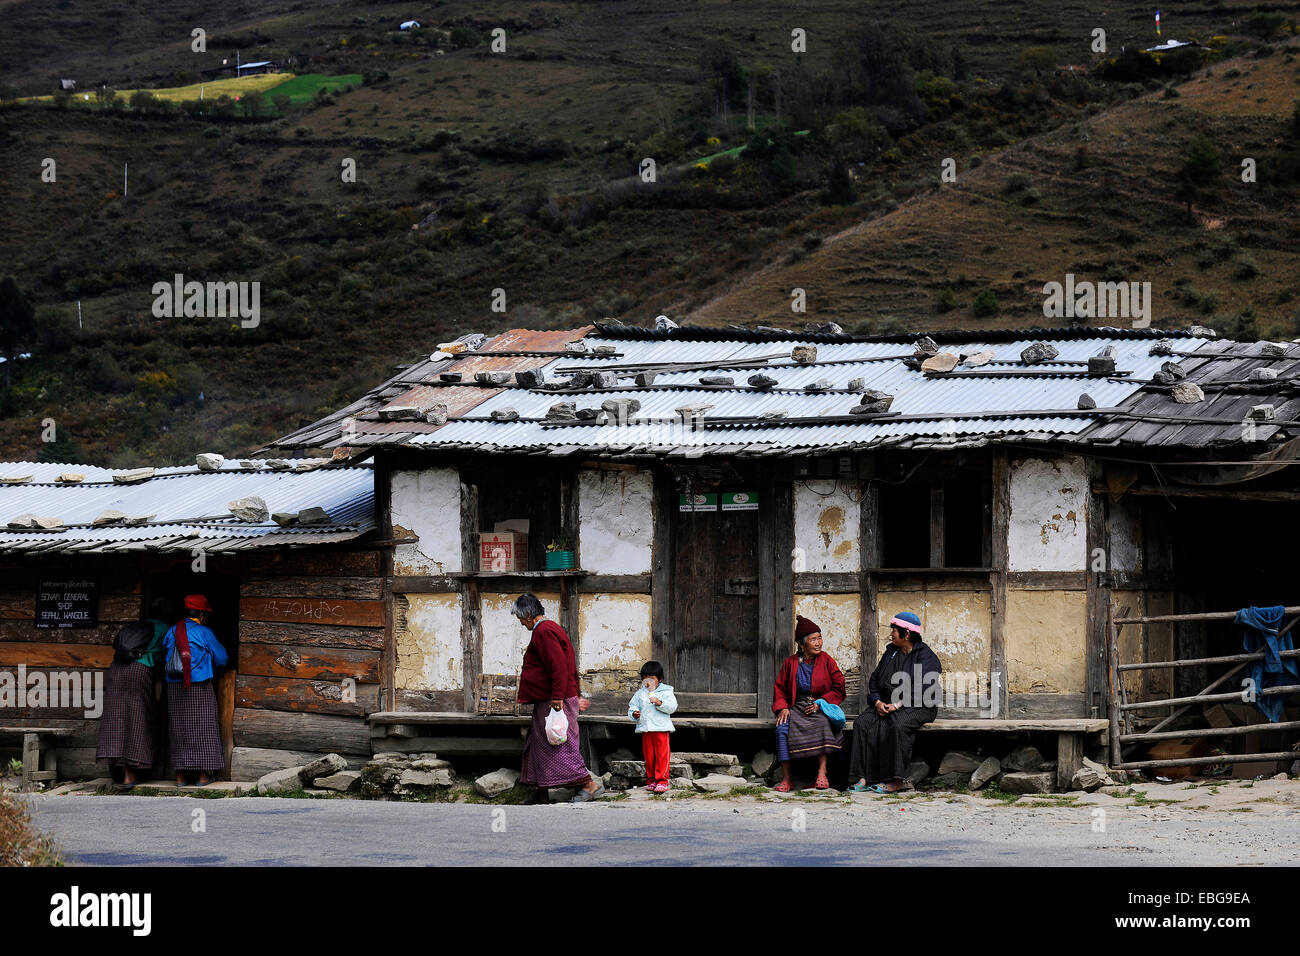 Small shop on the roadside with people out the front, Pela La Pass, Wangdue Phodrang District, Bhutan - Stock Image